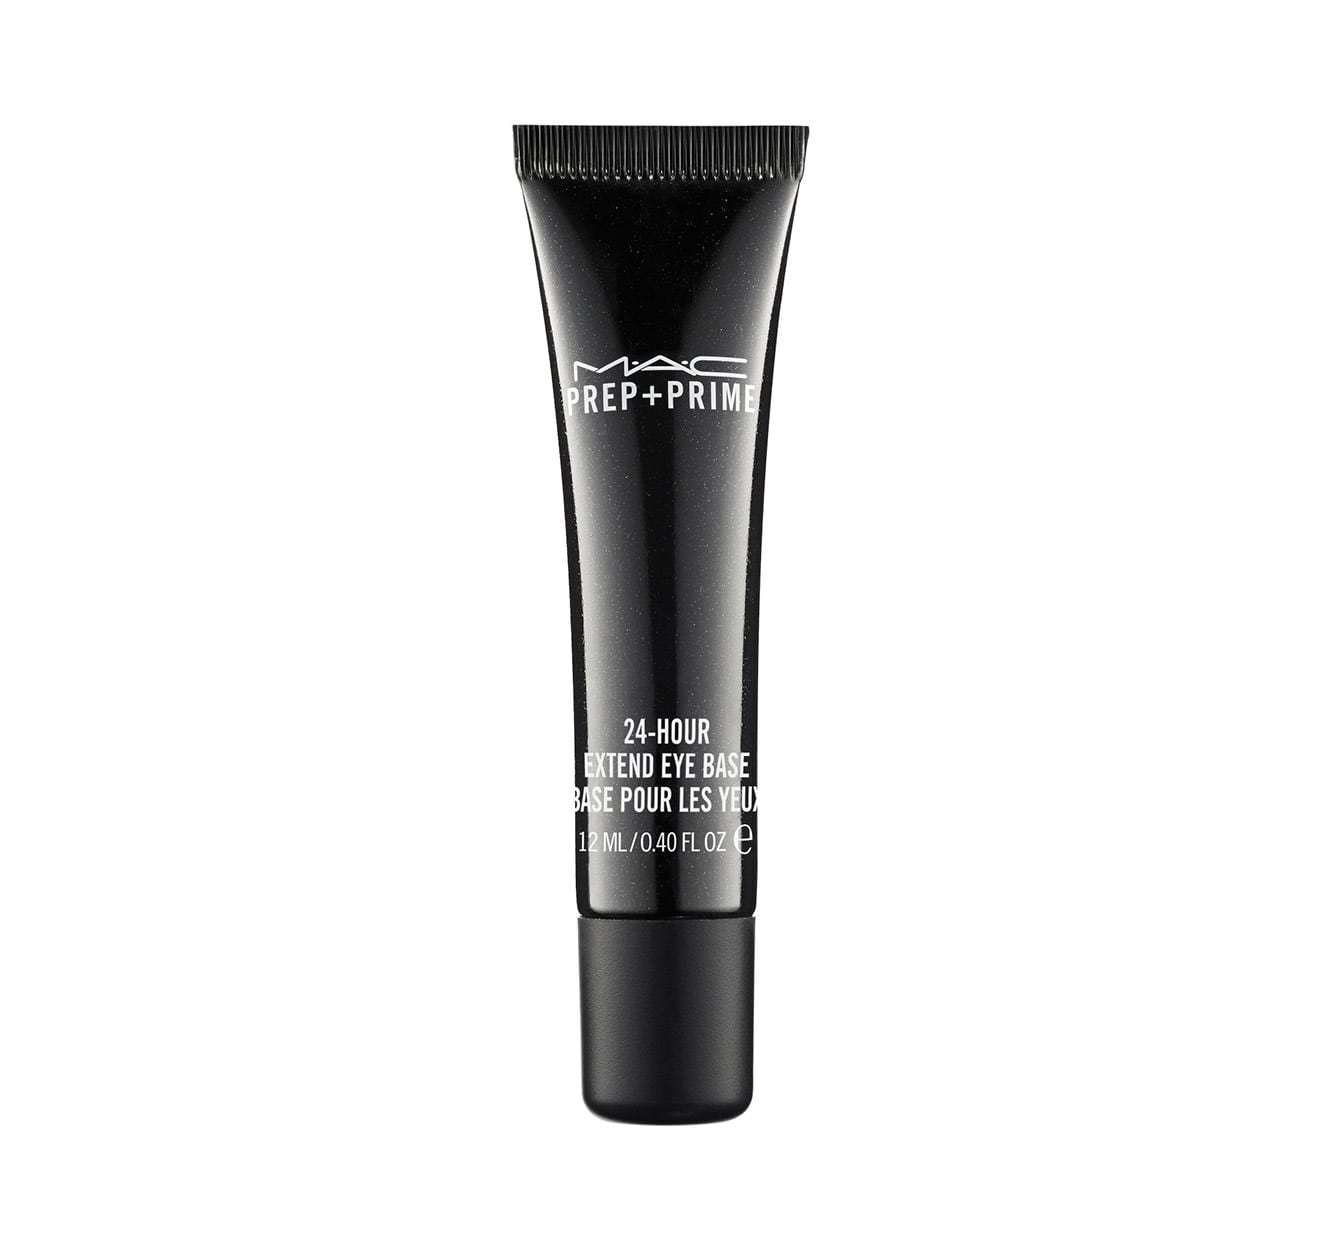 Prep Prime 24 Hour Extend Eye Base Mac Cosmetics Official Site